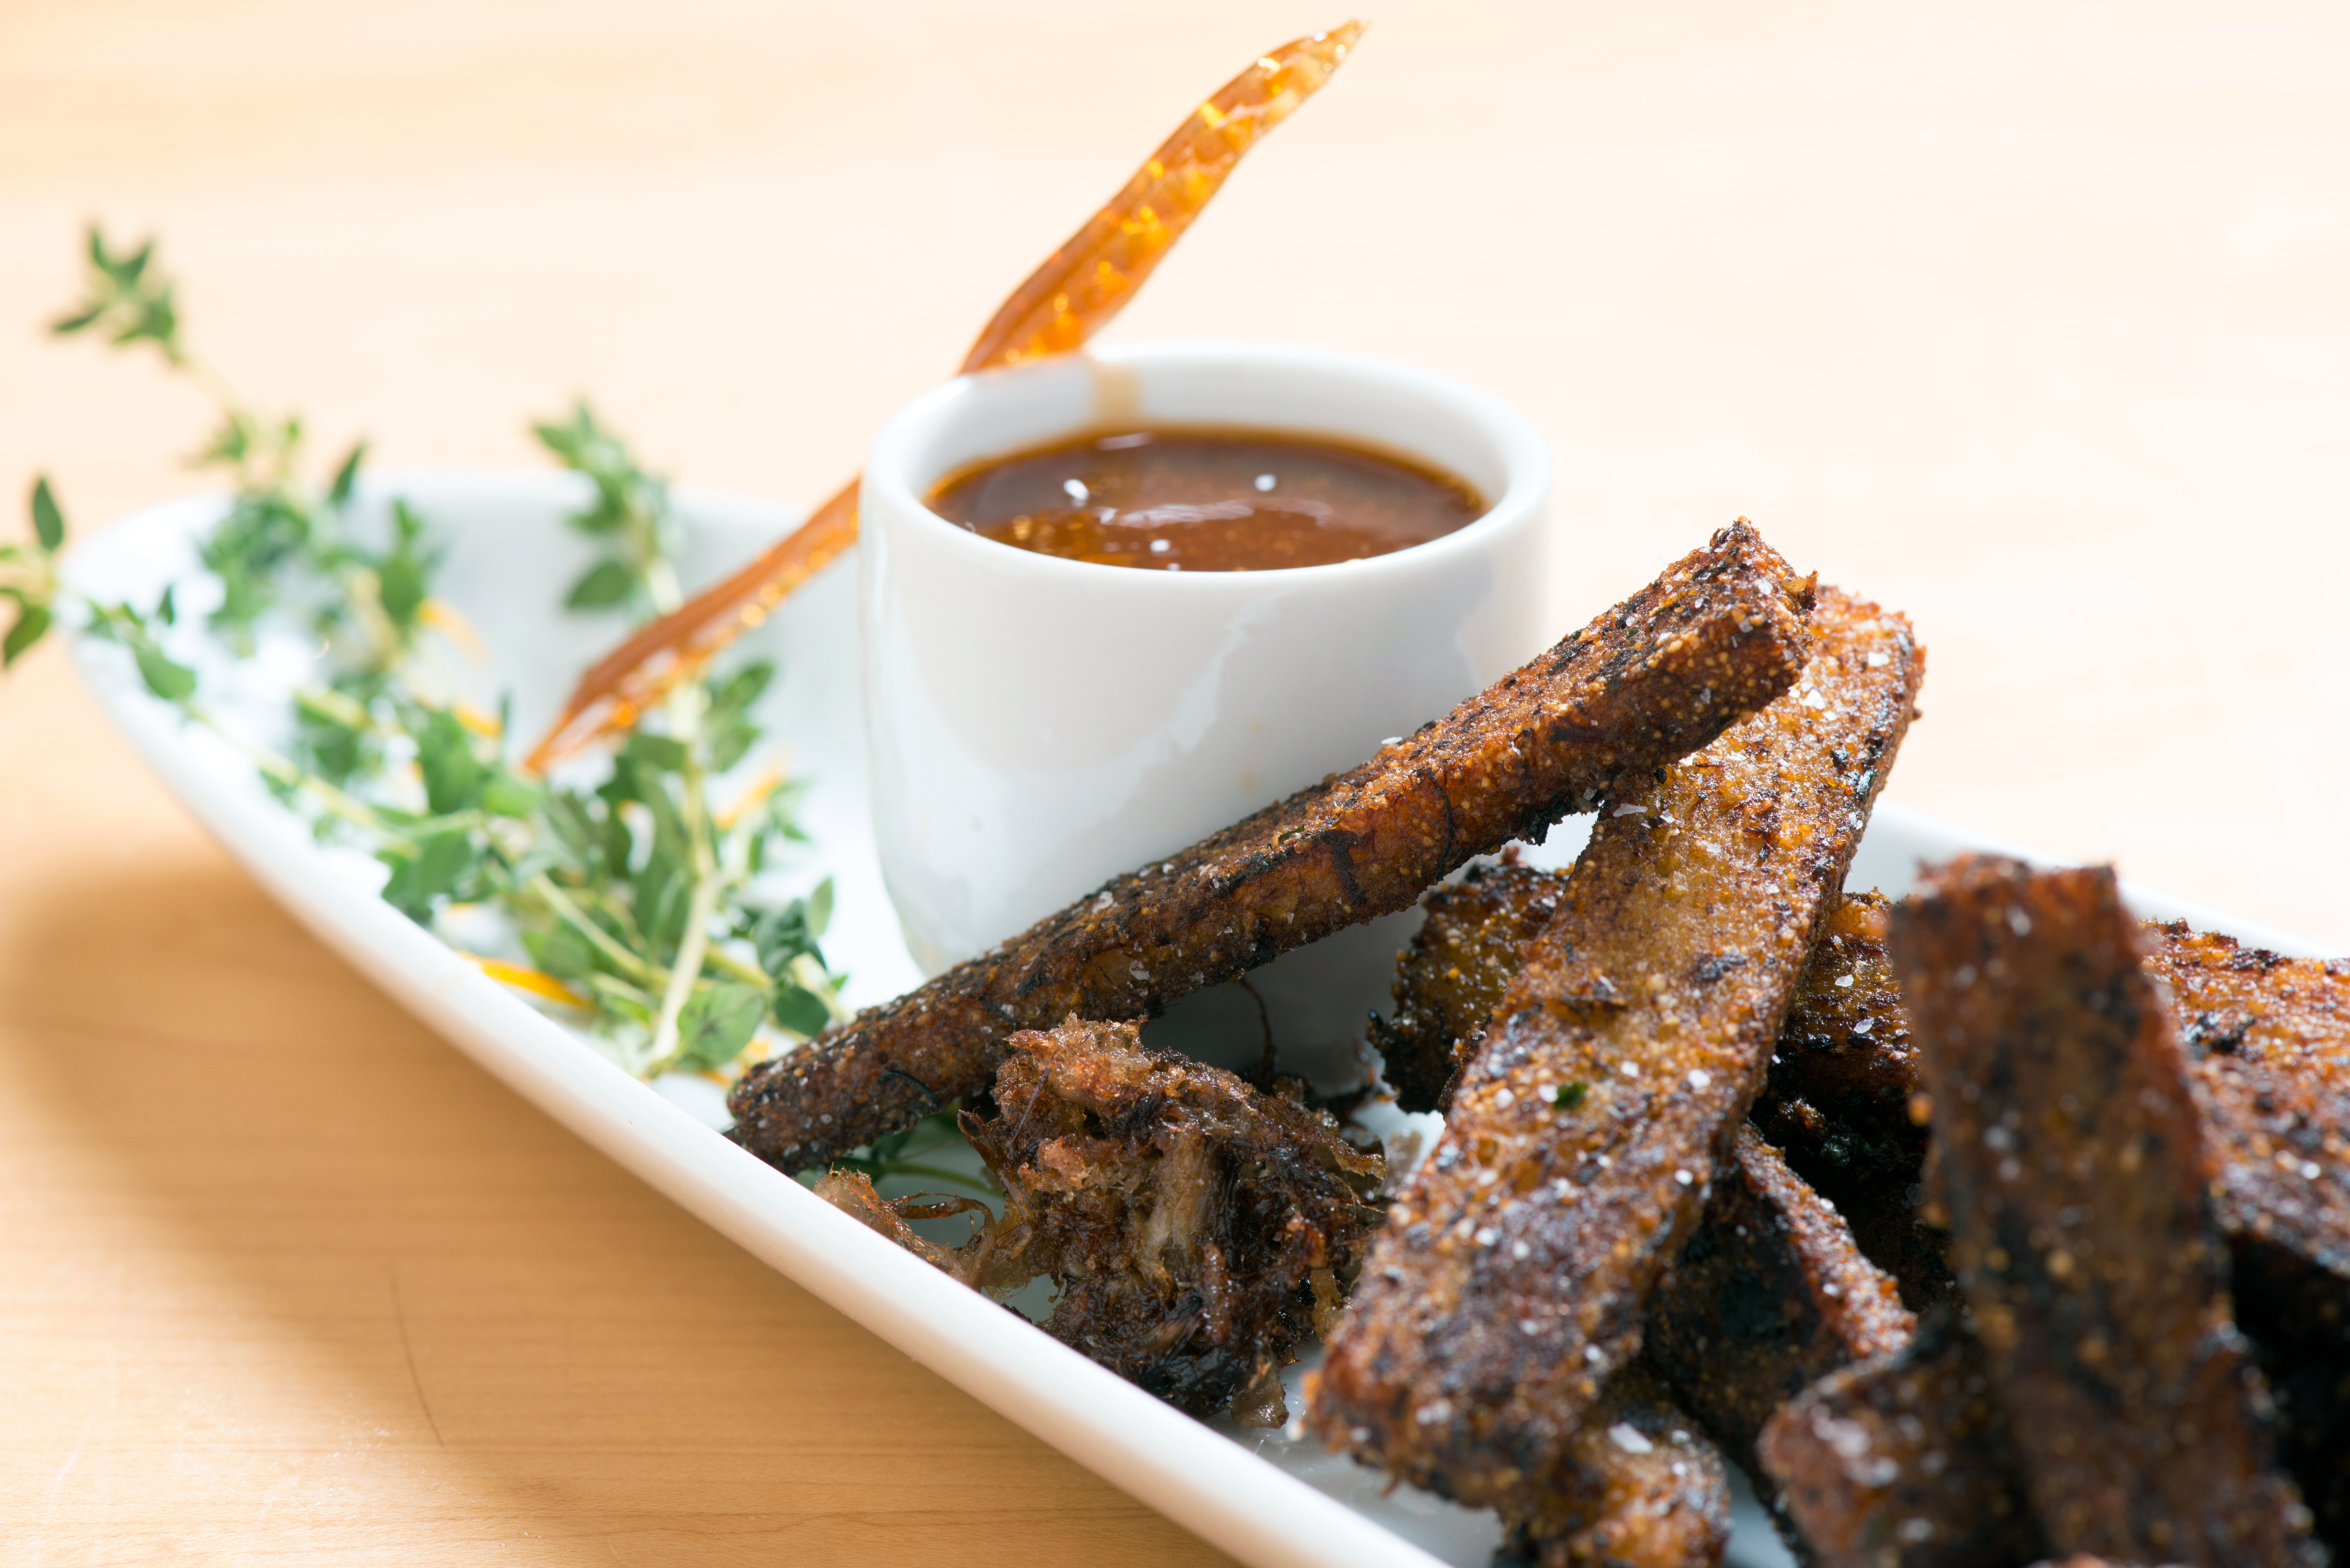 These smokey pork'fries' are easy-to-eat, hand-held pork shoulder bites made with apple cider, dijonmustard, buckwheat honey, herbs, spices, and cornmeal.